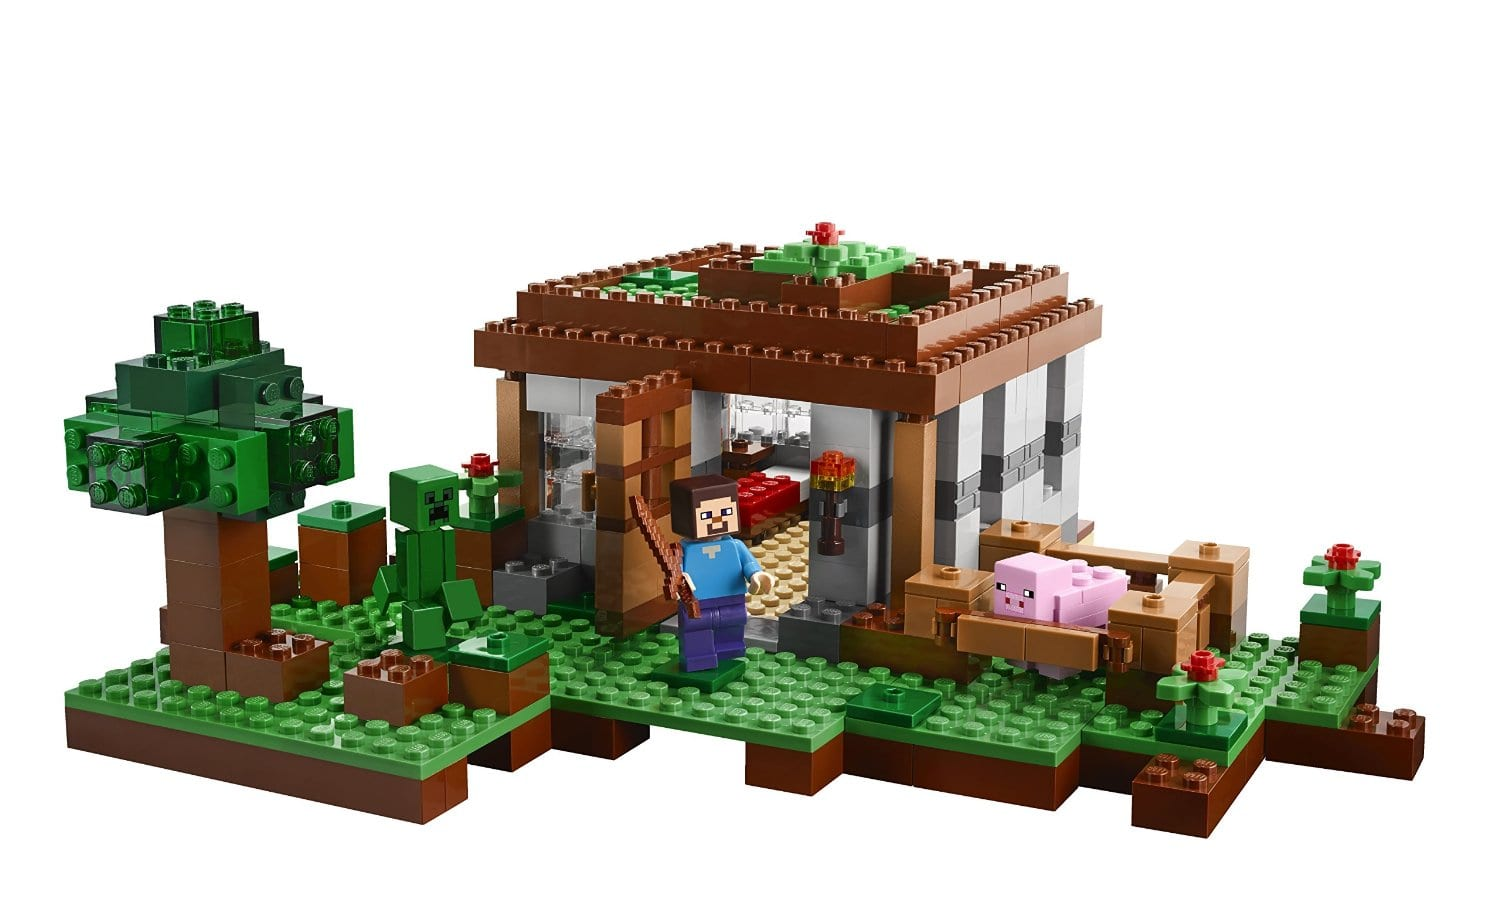 New Minecraft Lego Sets For 2014 On Sale Now  U00bb Skrafty